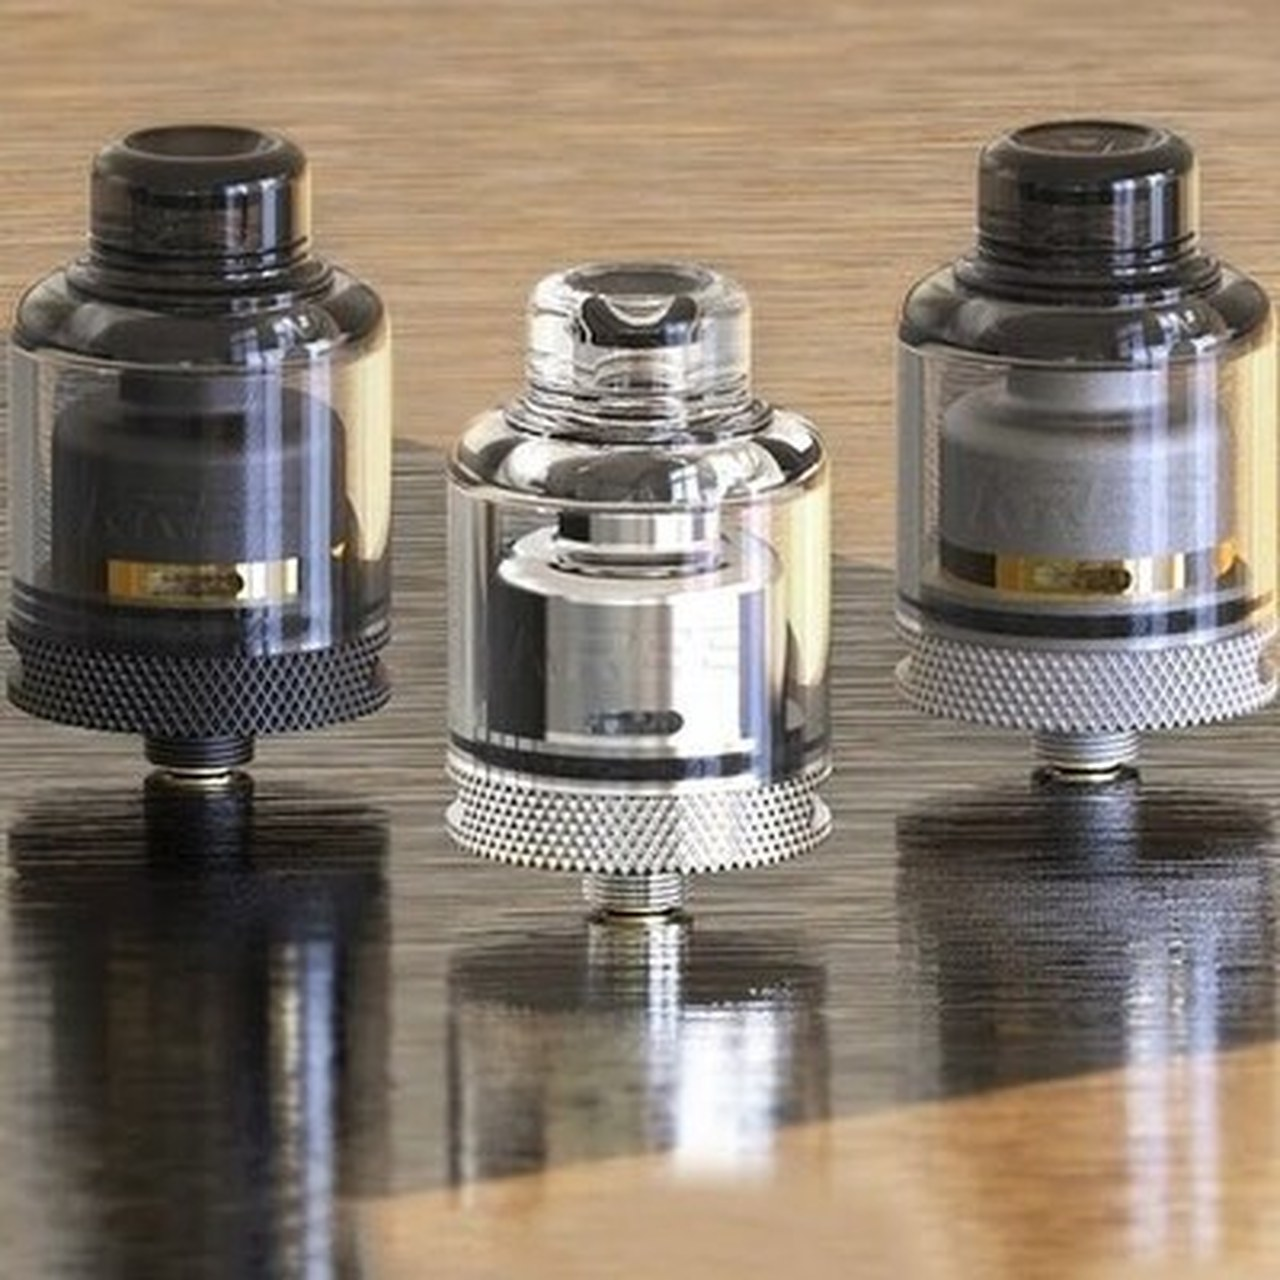 RTA KREE 22mm Gas Mods - restock